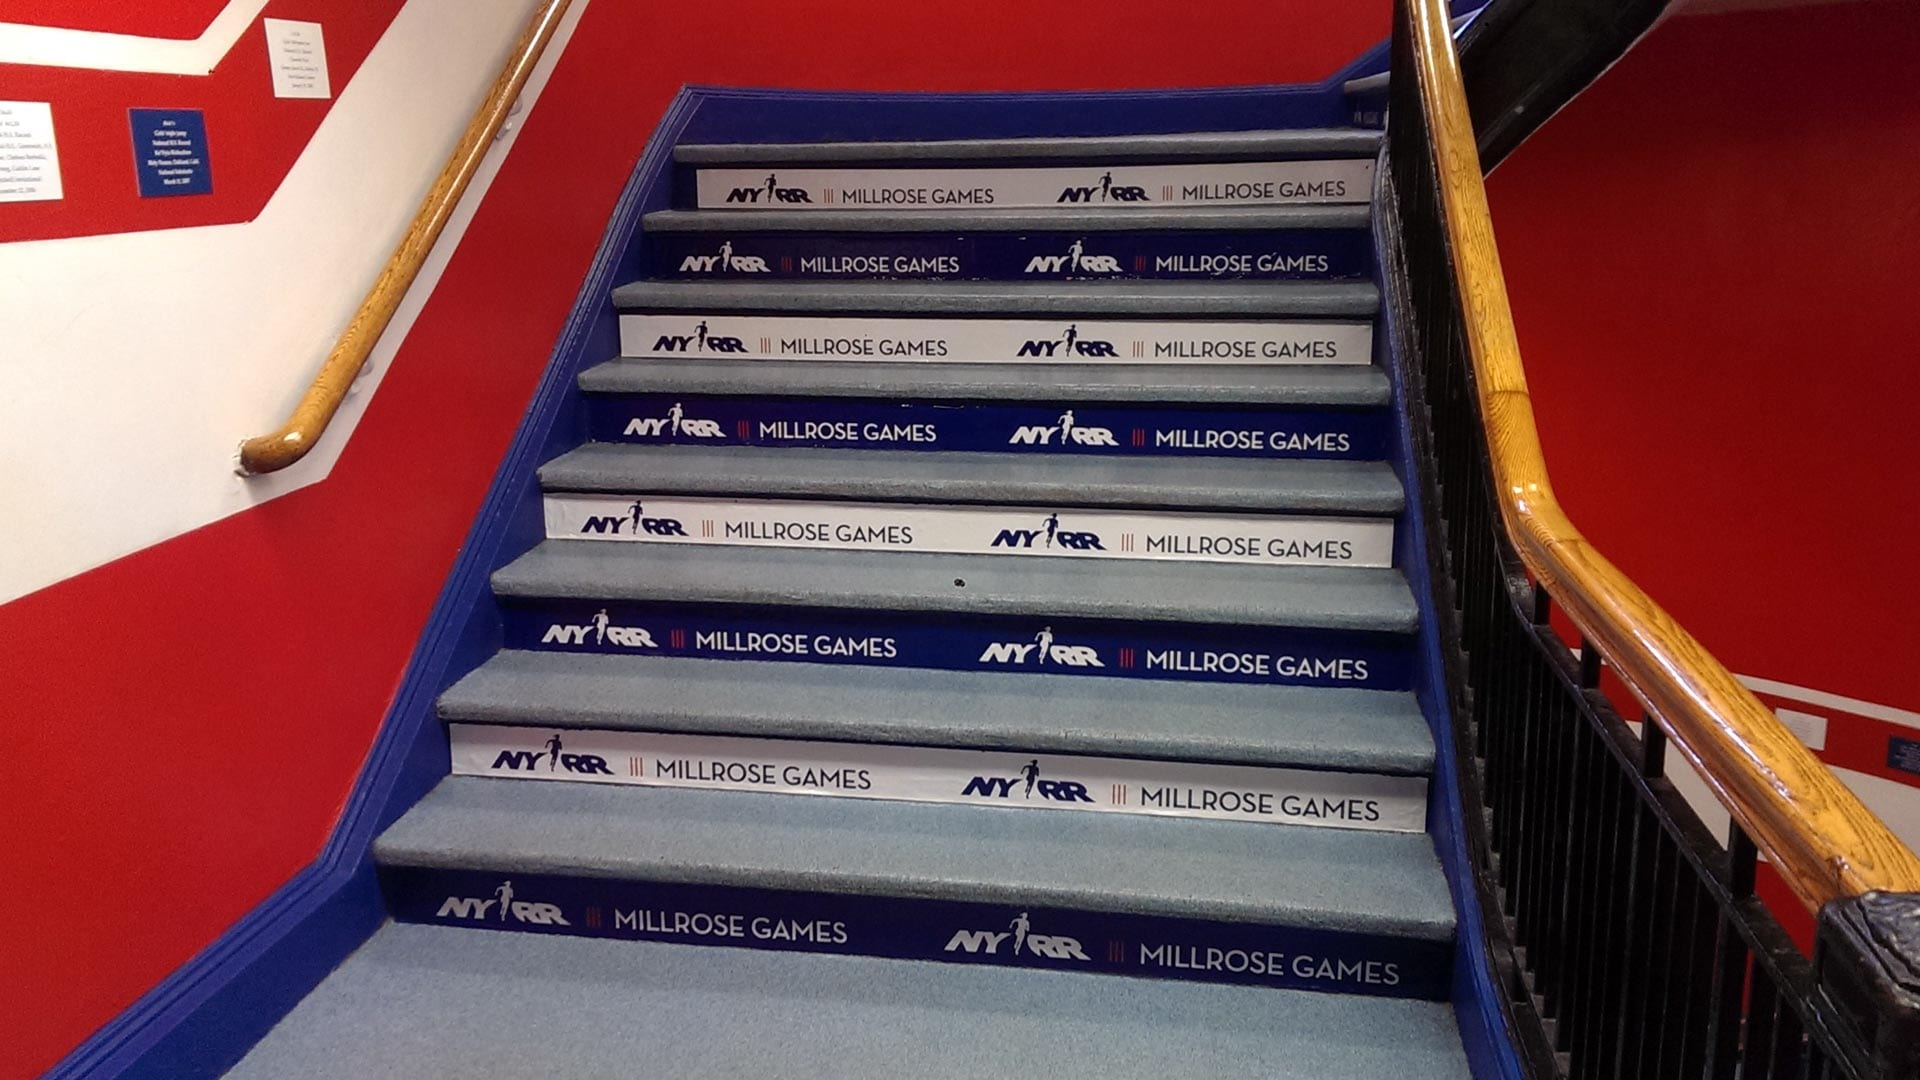 Stair wrap promoting a sporting event